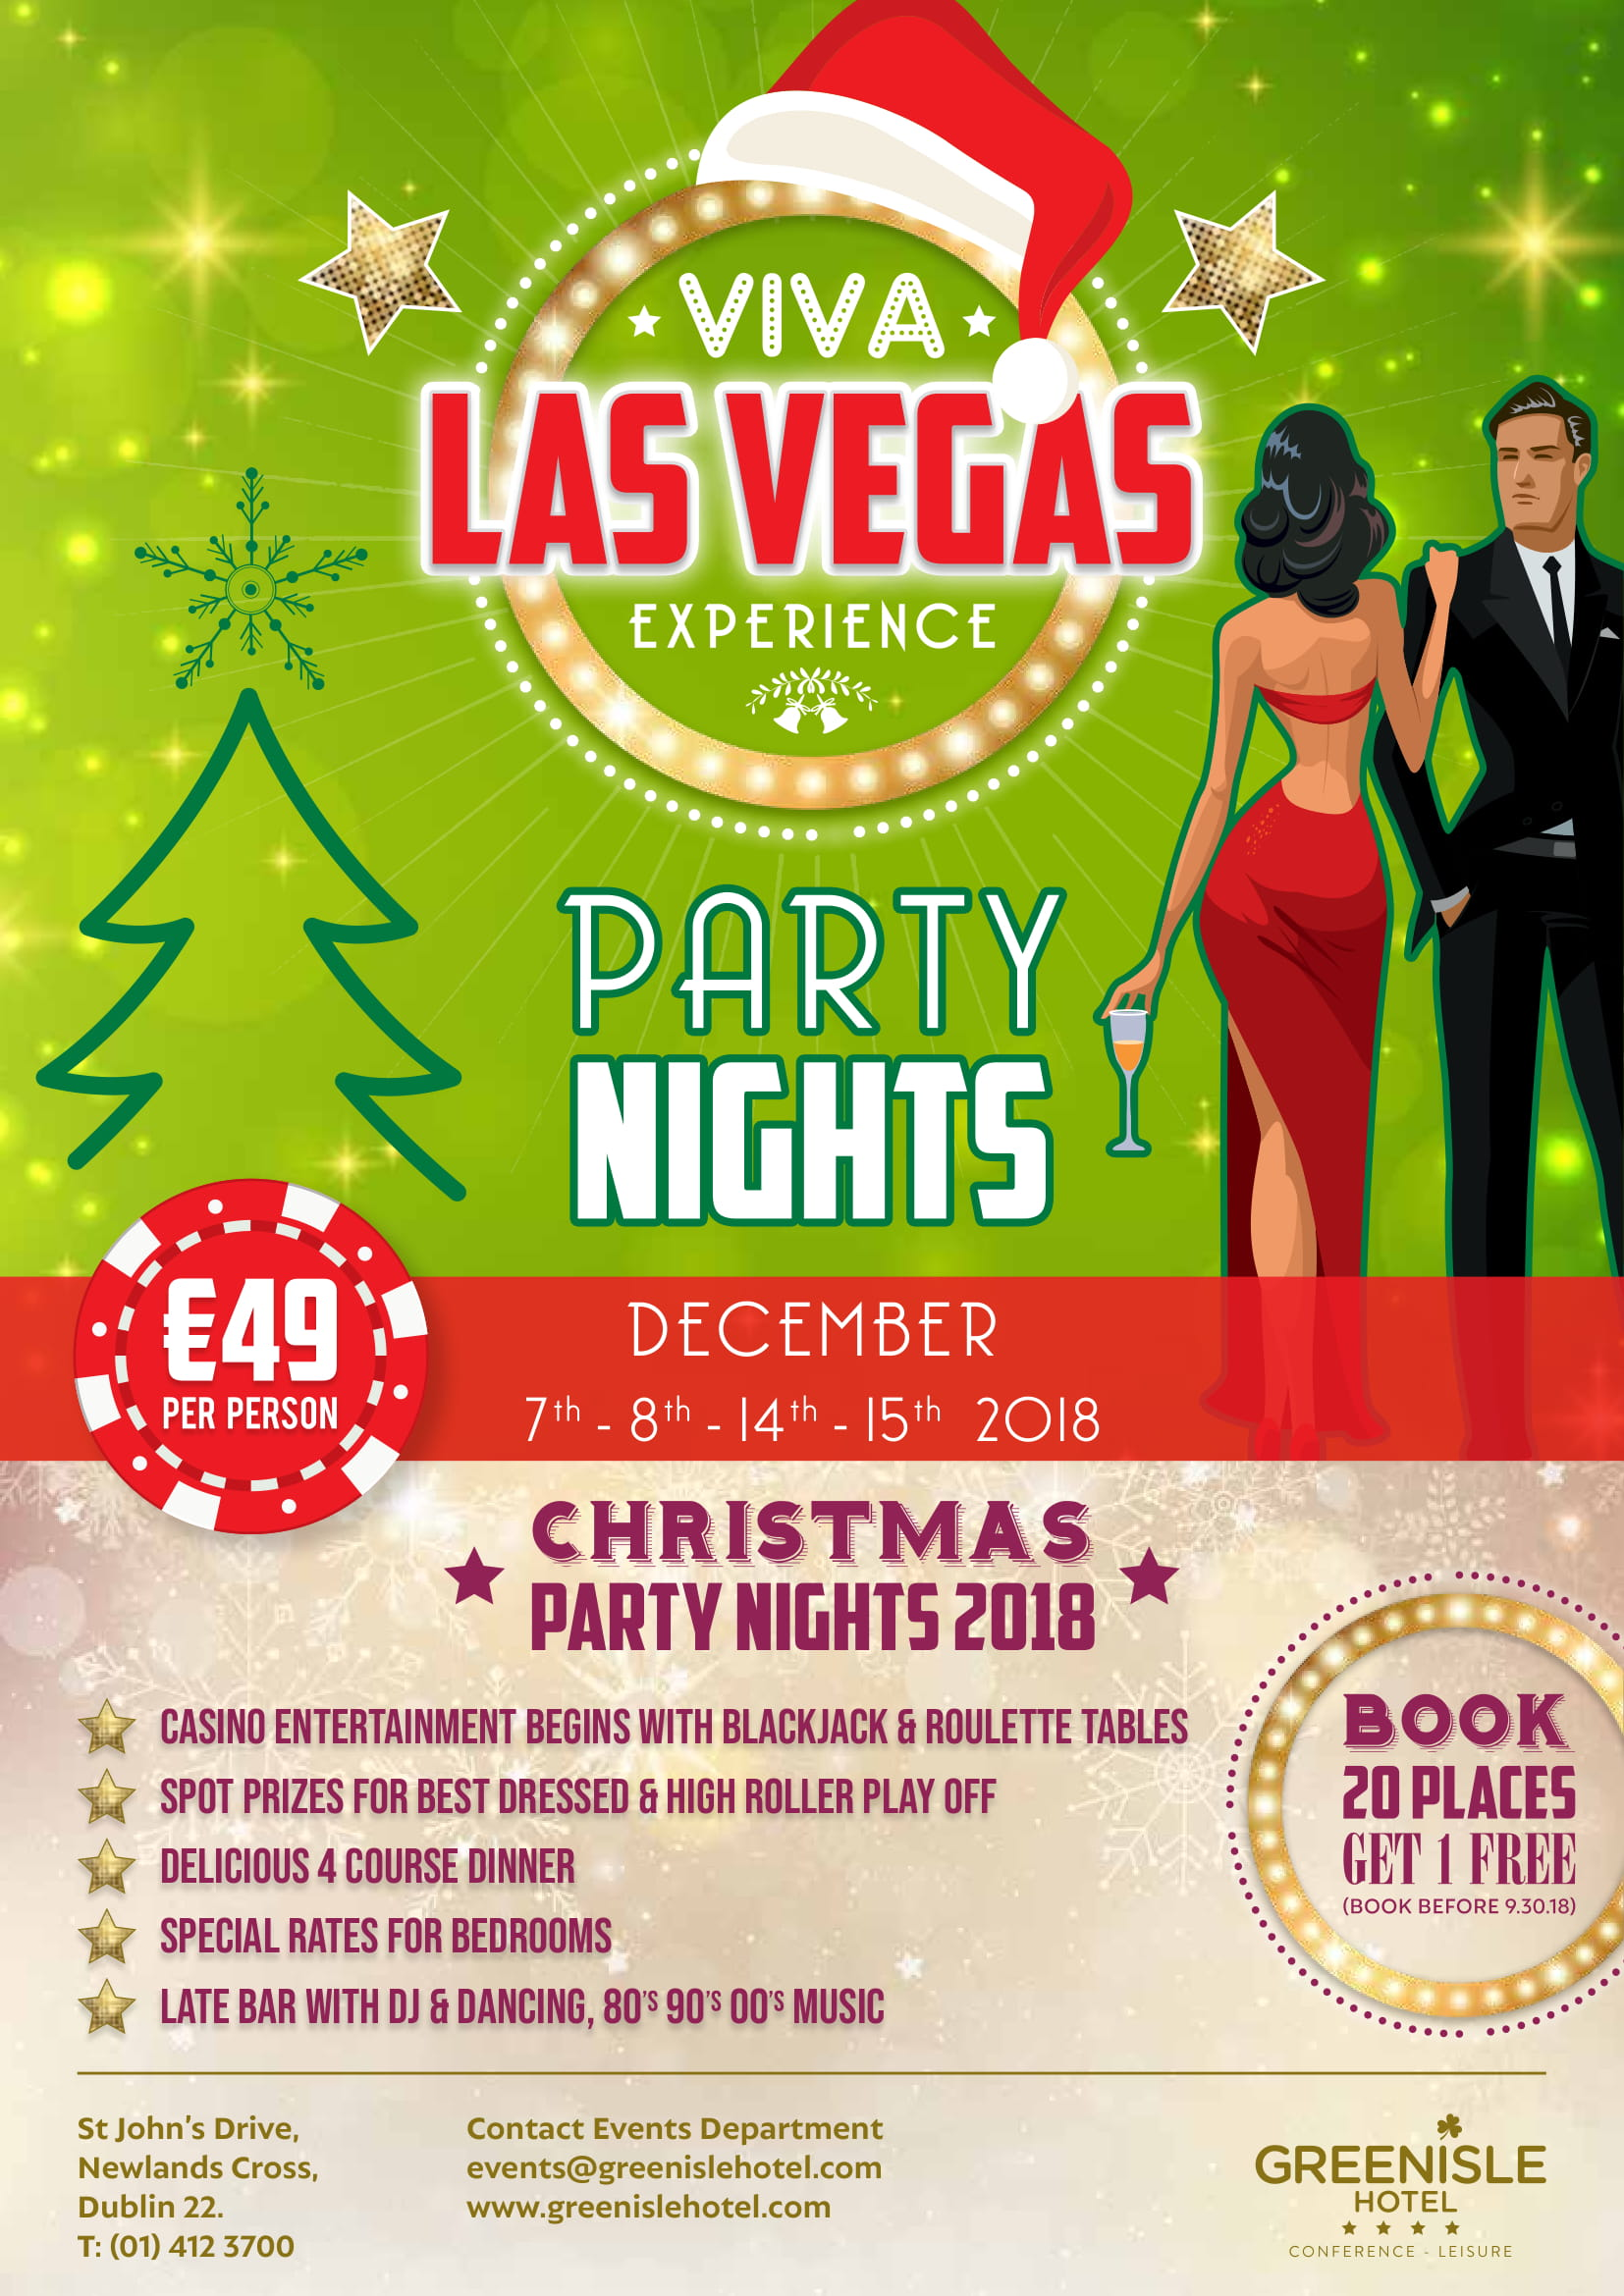 Las Vegas Christmas Party Night